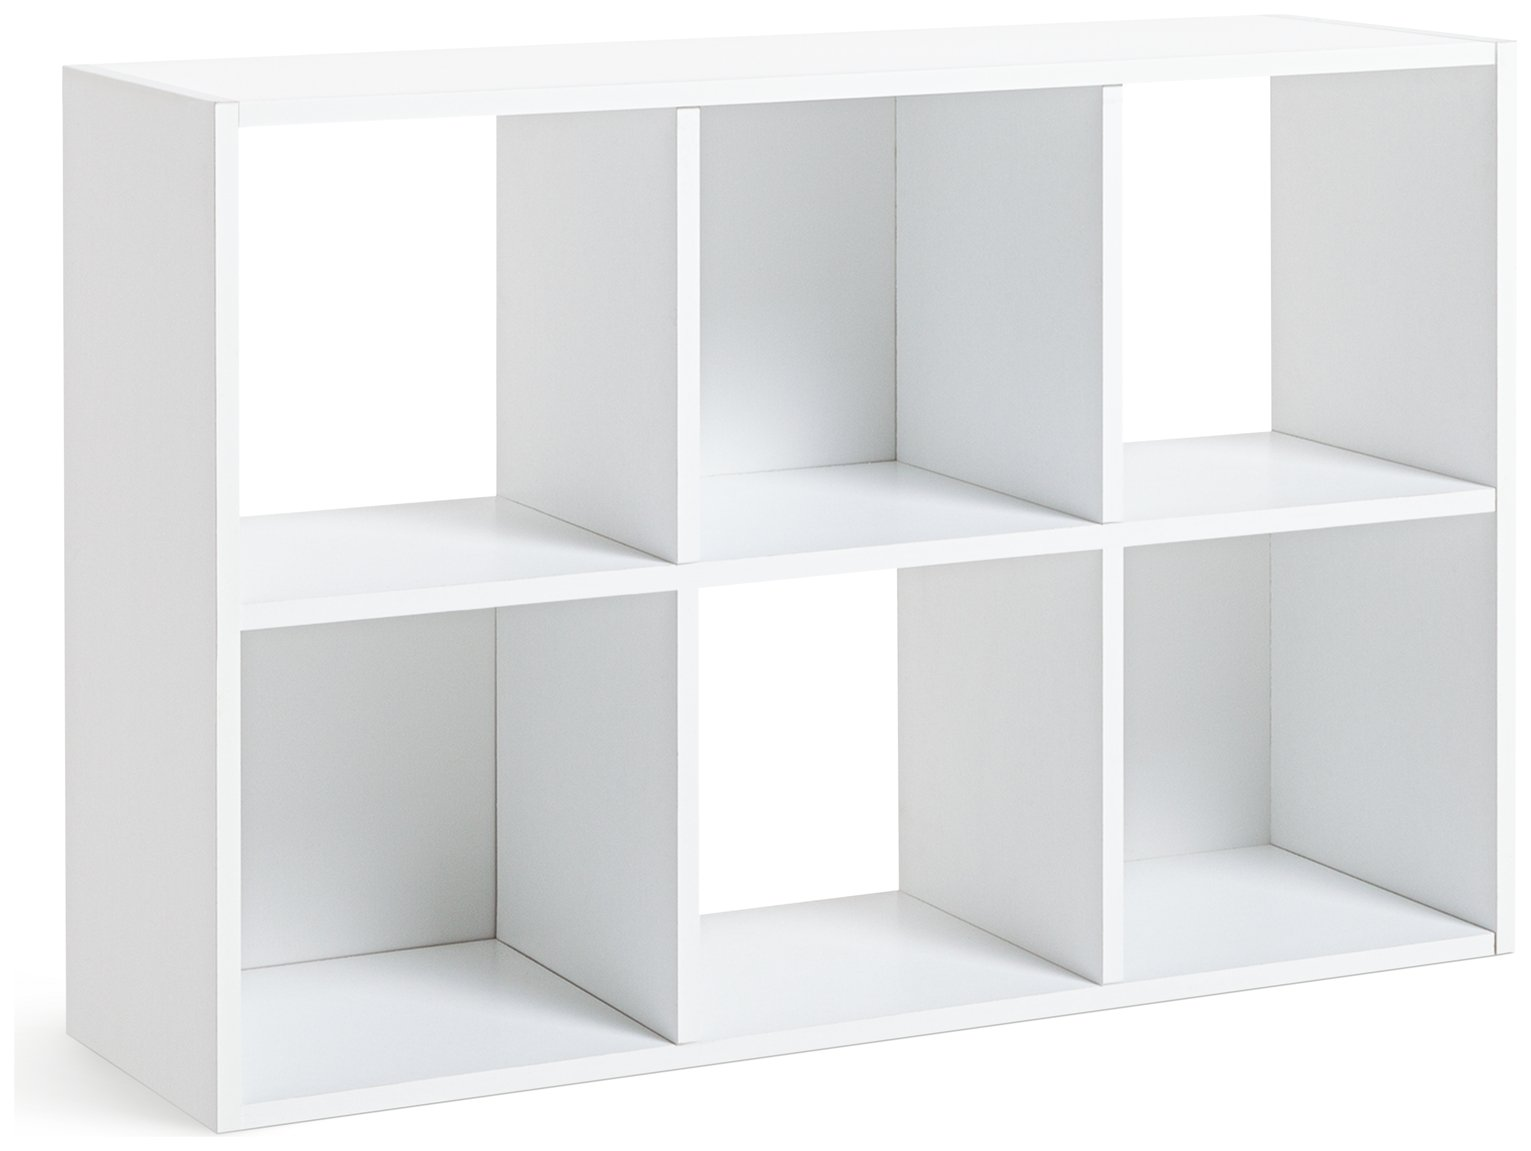 Habitat Squares 6 Cube Storage Unit - White